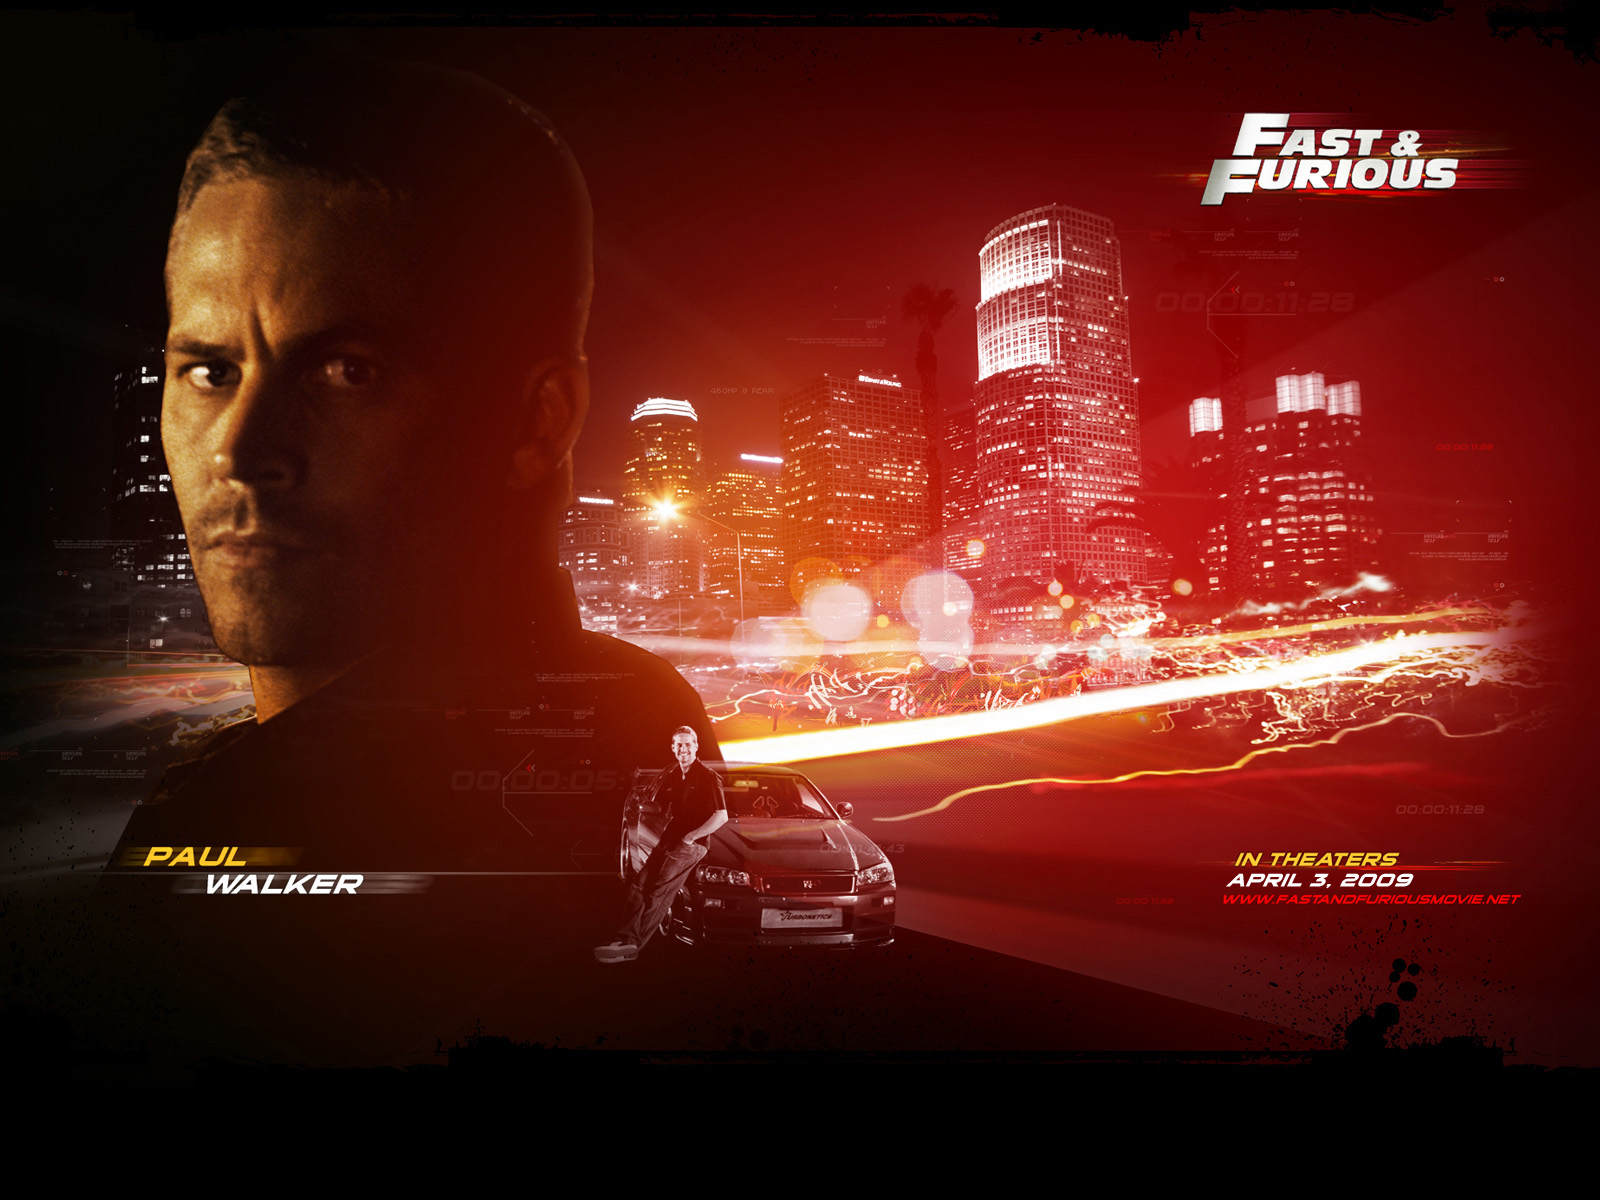 wallpaper HD paul walker fast and furious 7